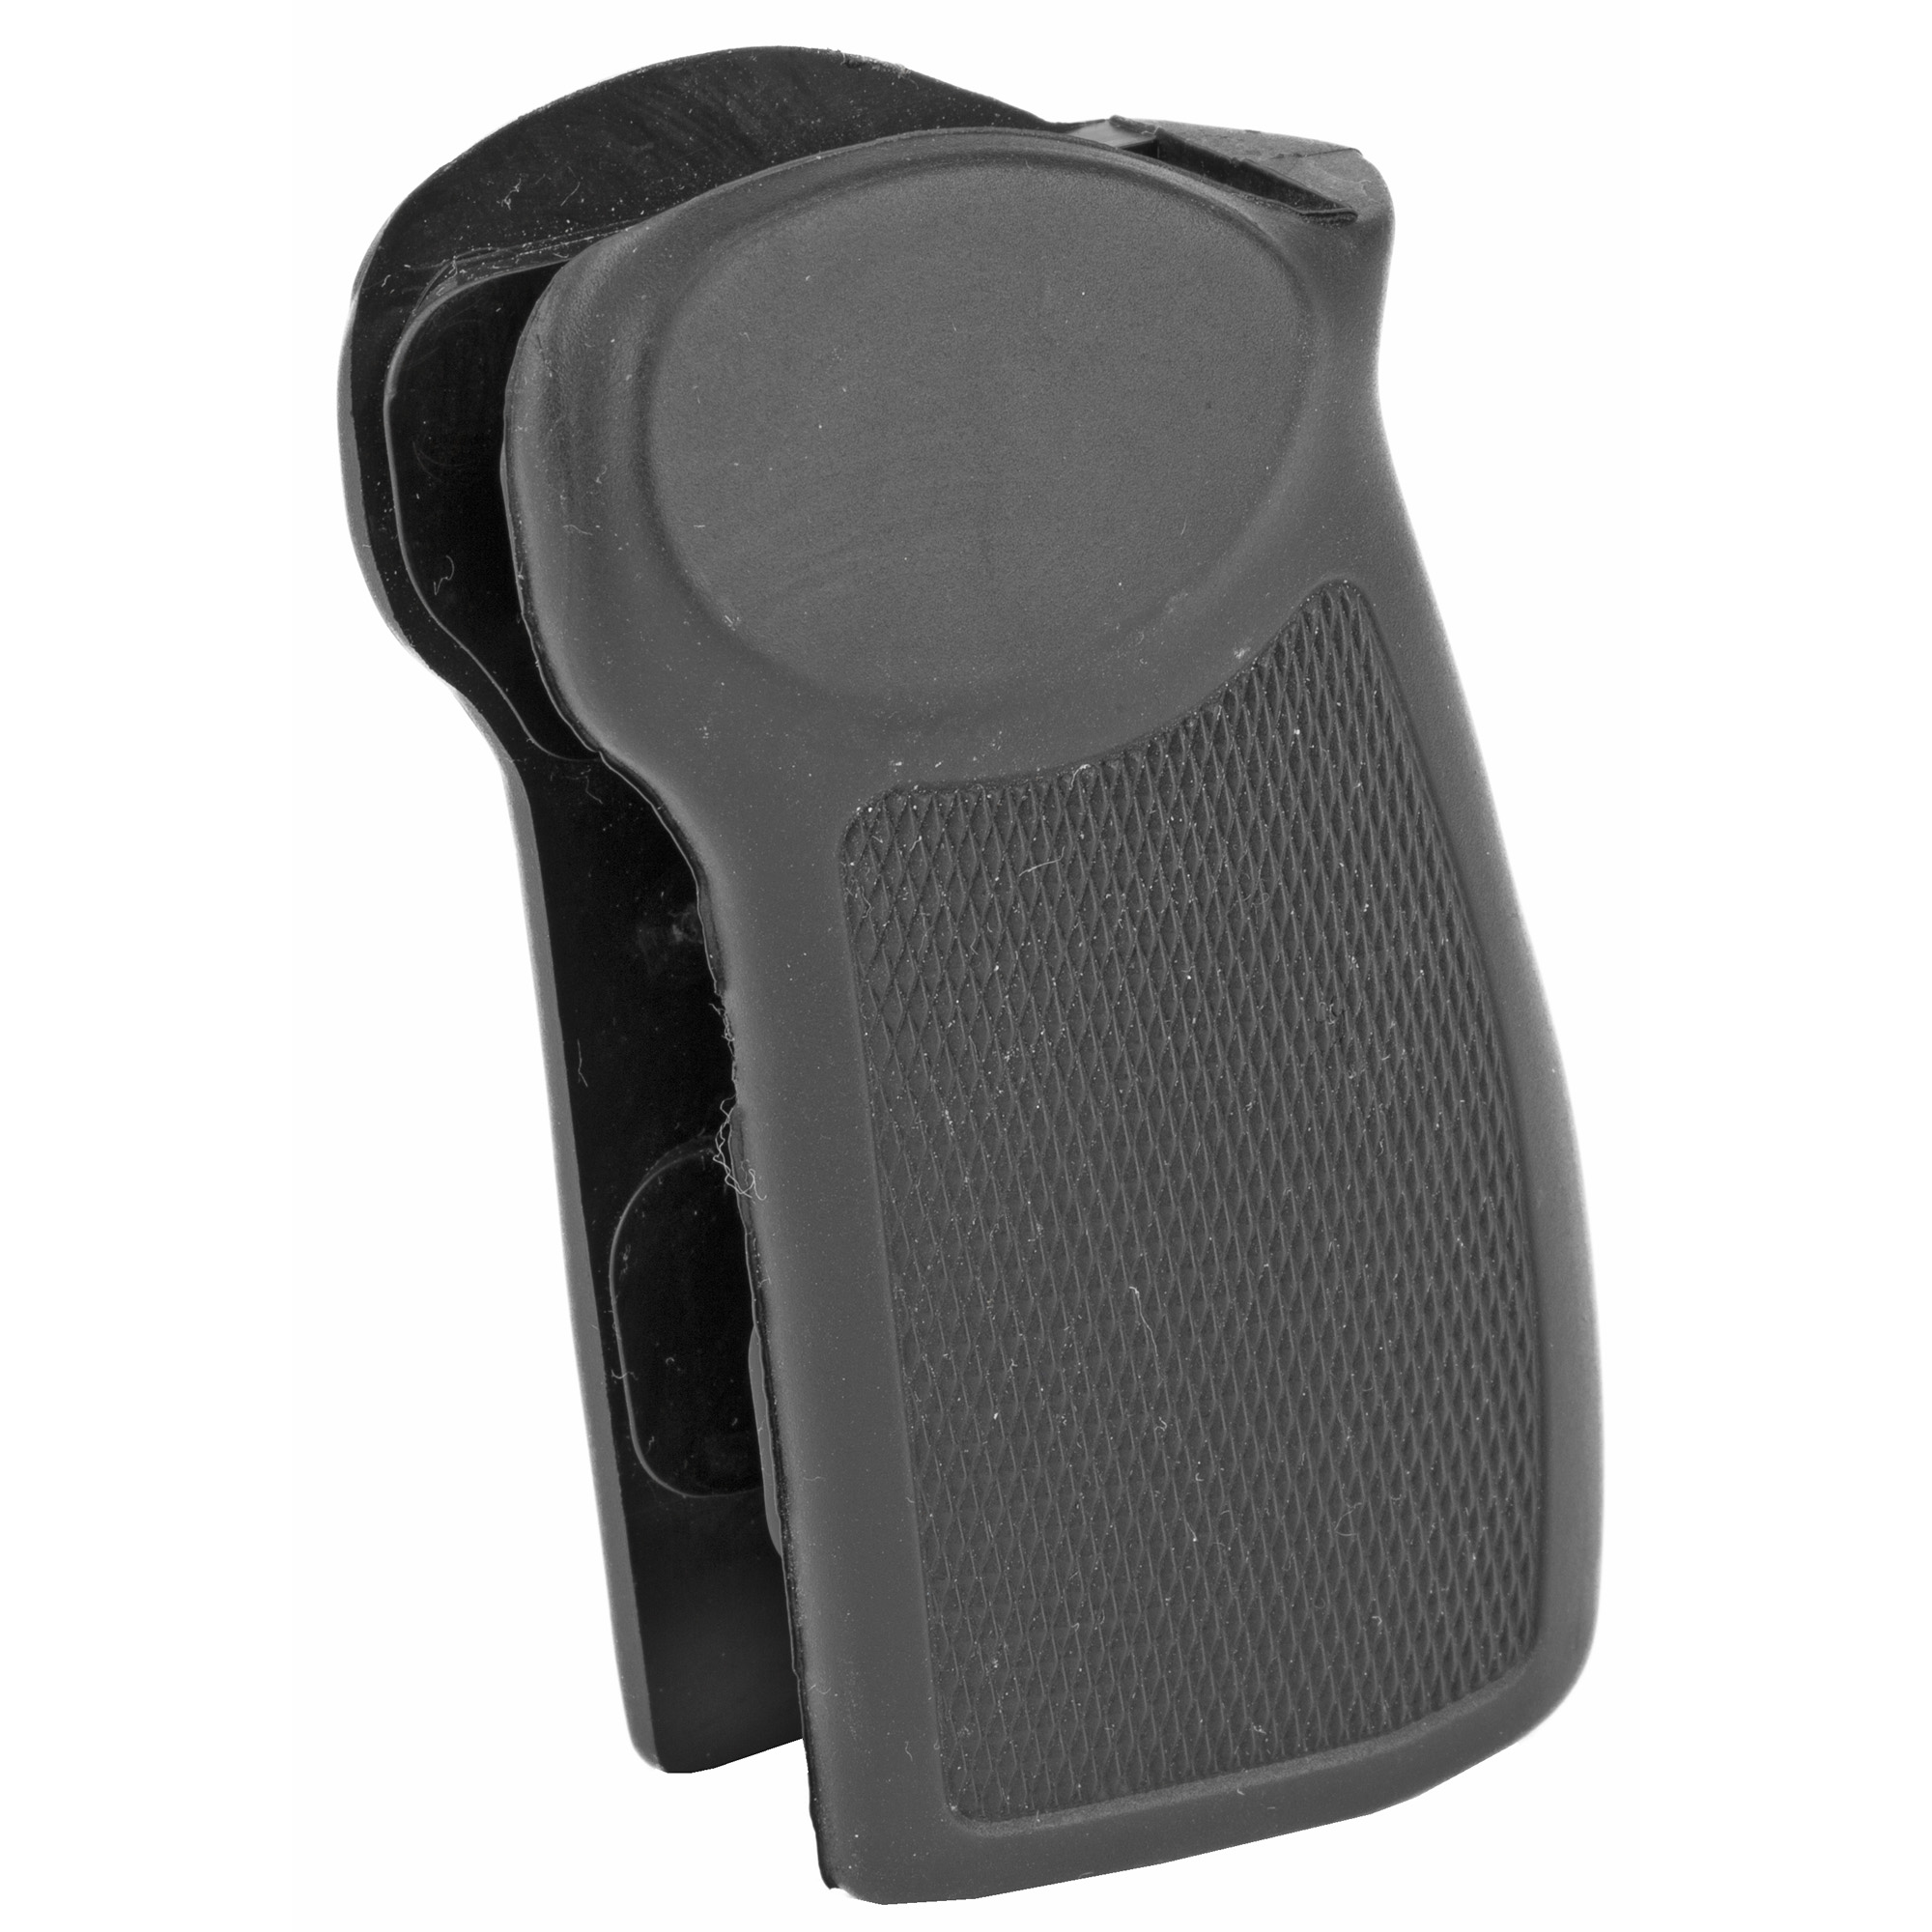 """These soft rubber replacement grips will fit the (8 shot) East German"""" Russian"""" Bulgarian and Chinese models dramatically improving the appearance"""" control and comfort of these popular imports. These grips are about 10% wider that the stock Makarov grips. Note: These grips will not fit the Hungarian PA63 pistol"""